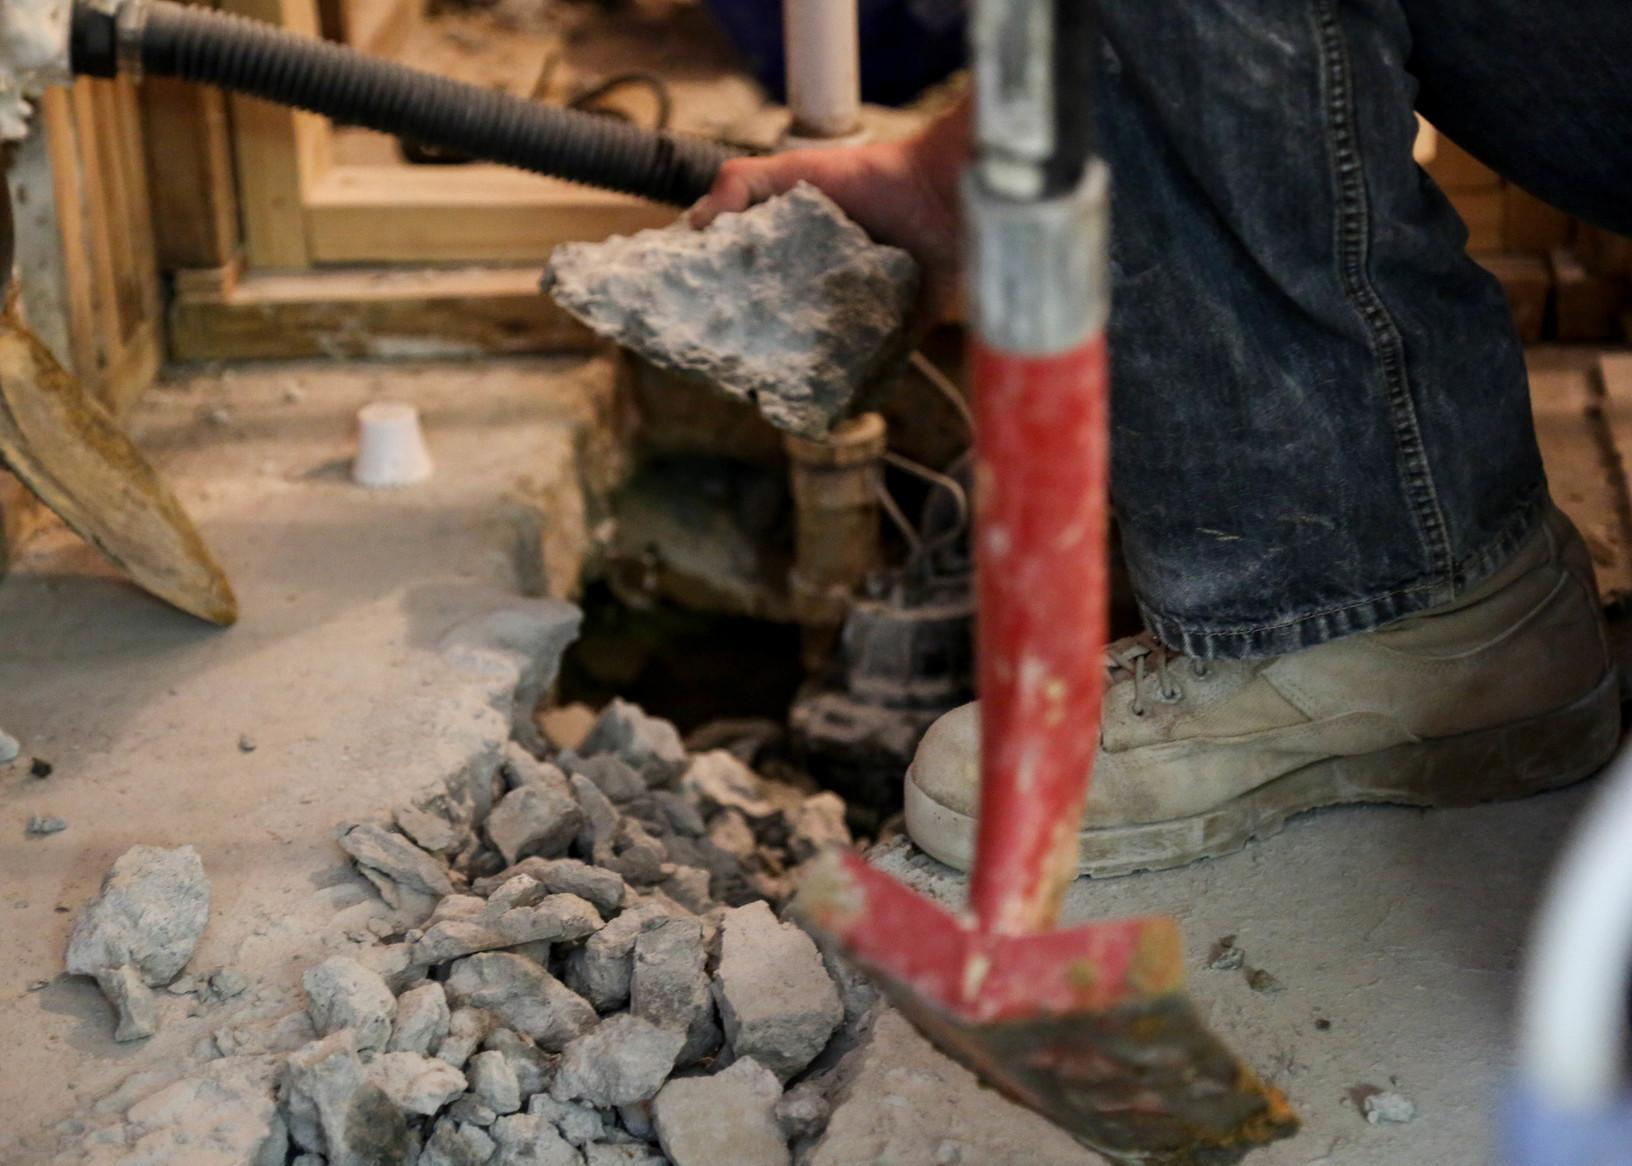 Chipping away concrete